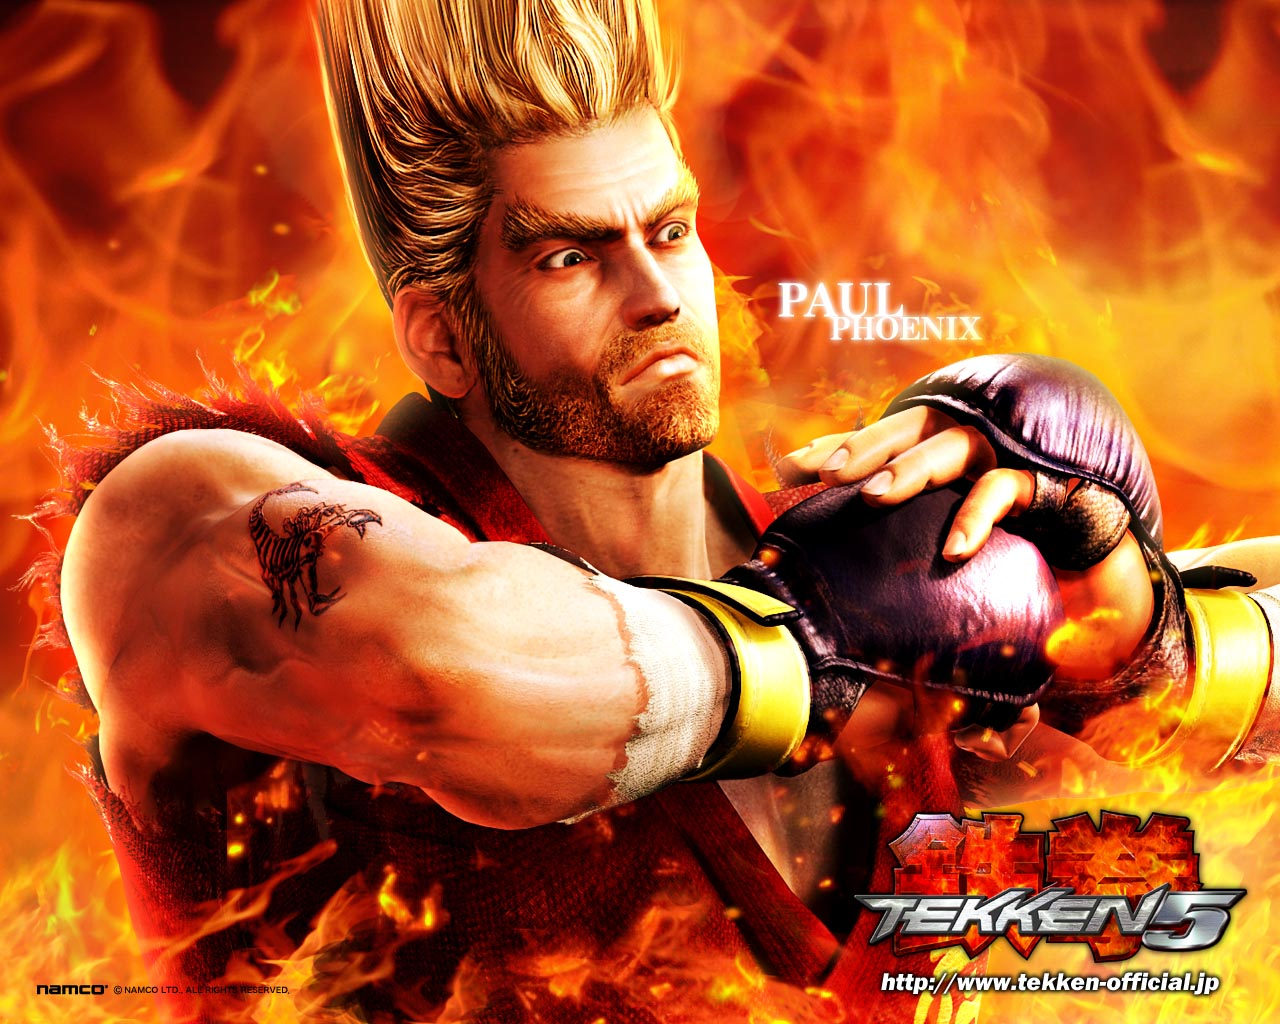 HD wallpapers: Tekken 5 Game HD Wallpapers all characters in 1280x1024